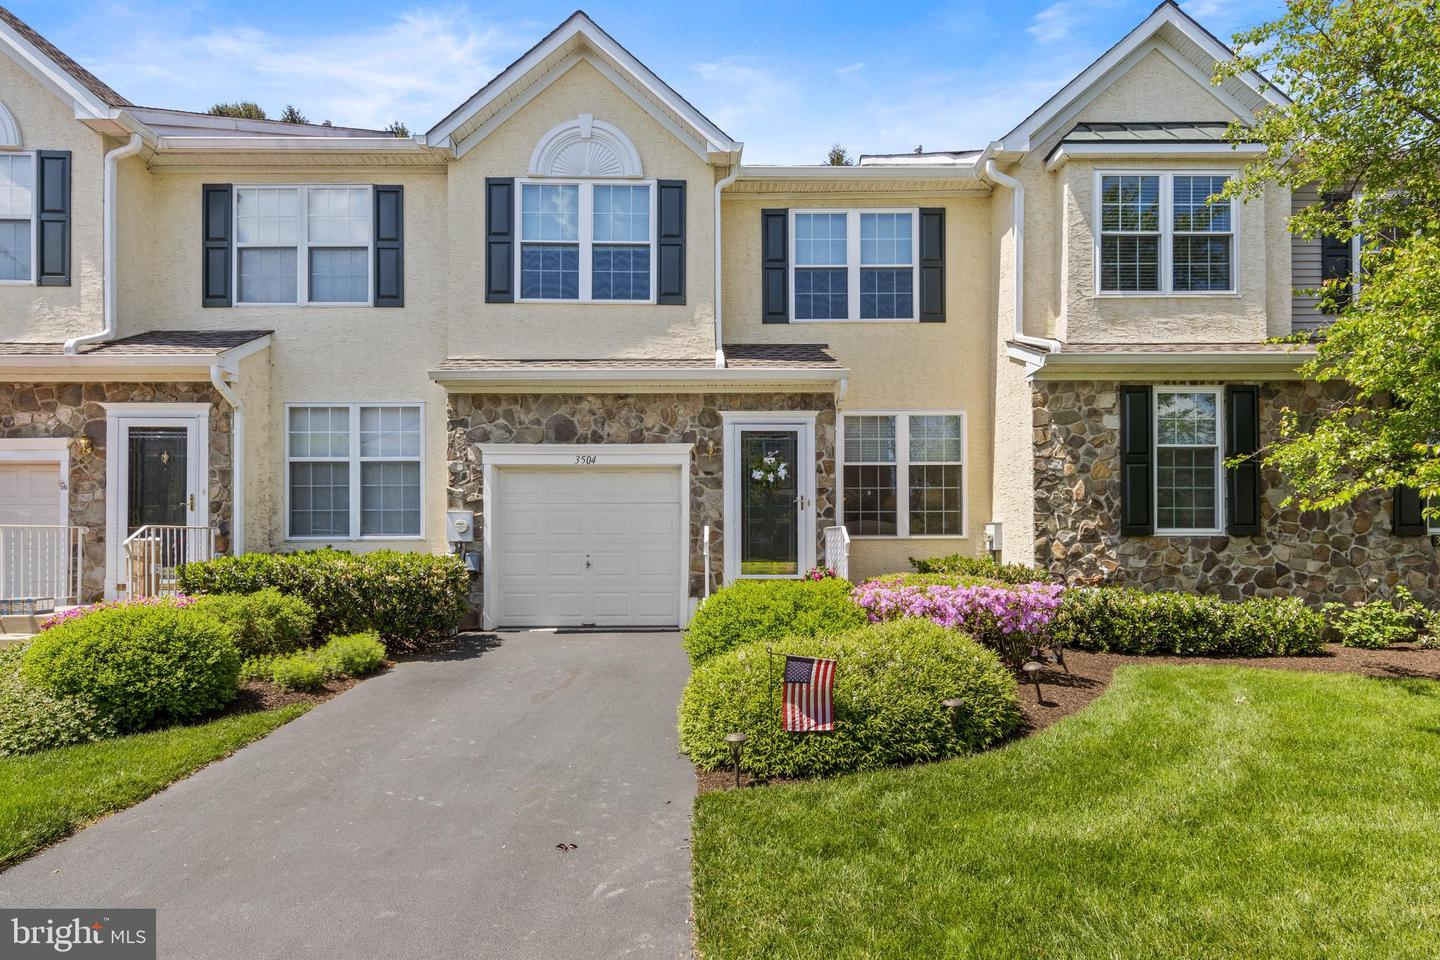 3504 Tall Oaks Lane Newtown Square, PA 19073